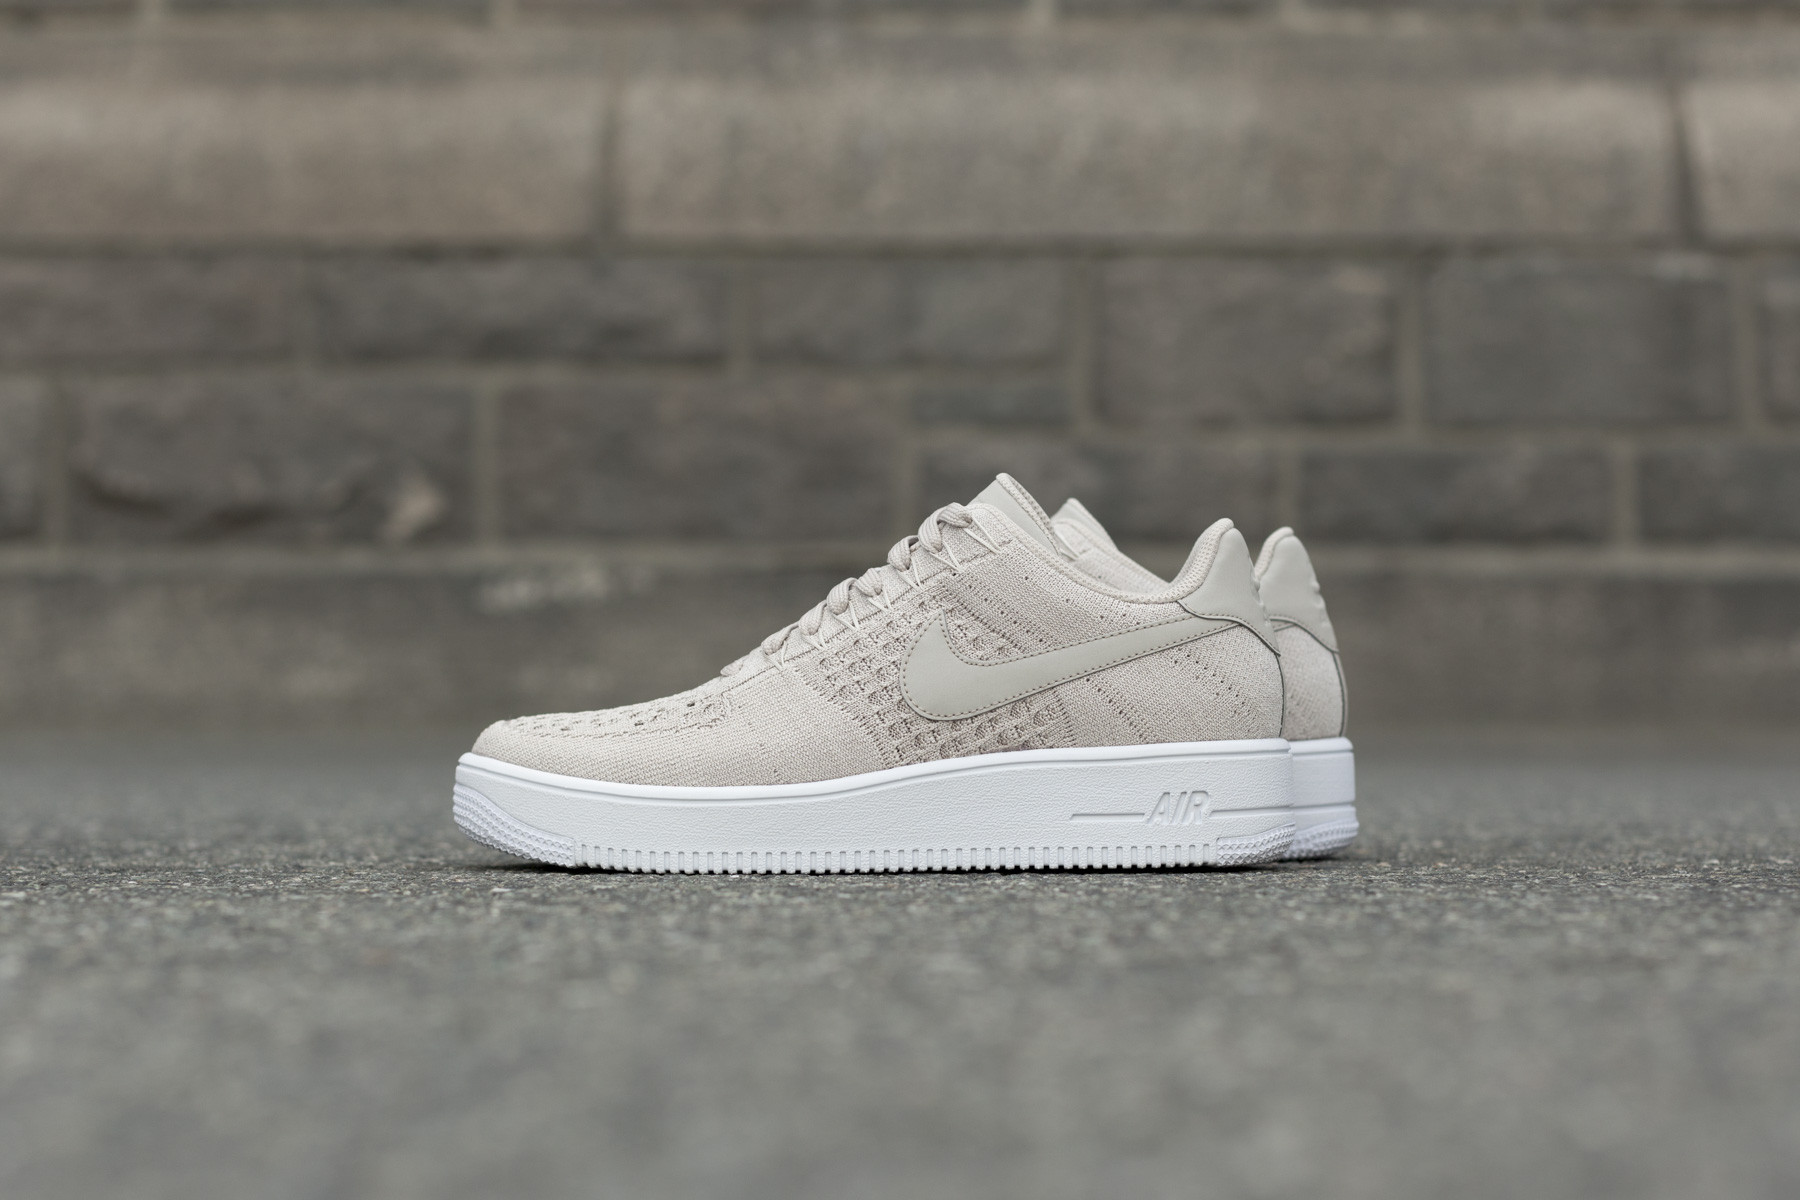 Nike Air Force 1 Ultra Flyknit Low White Ice | Nike | Sole